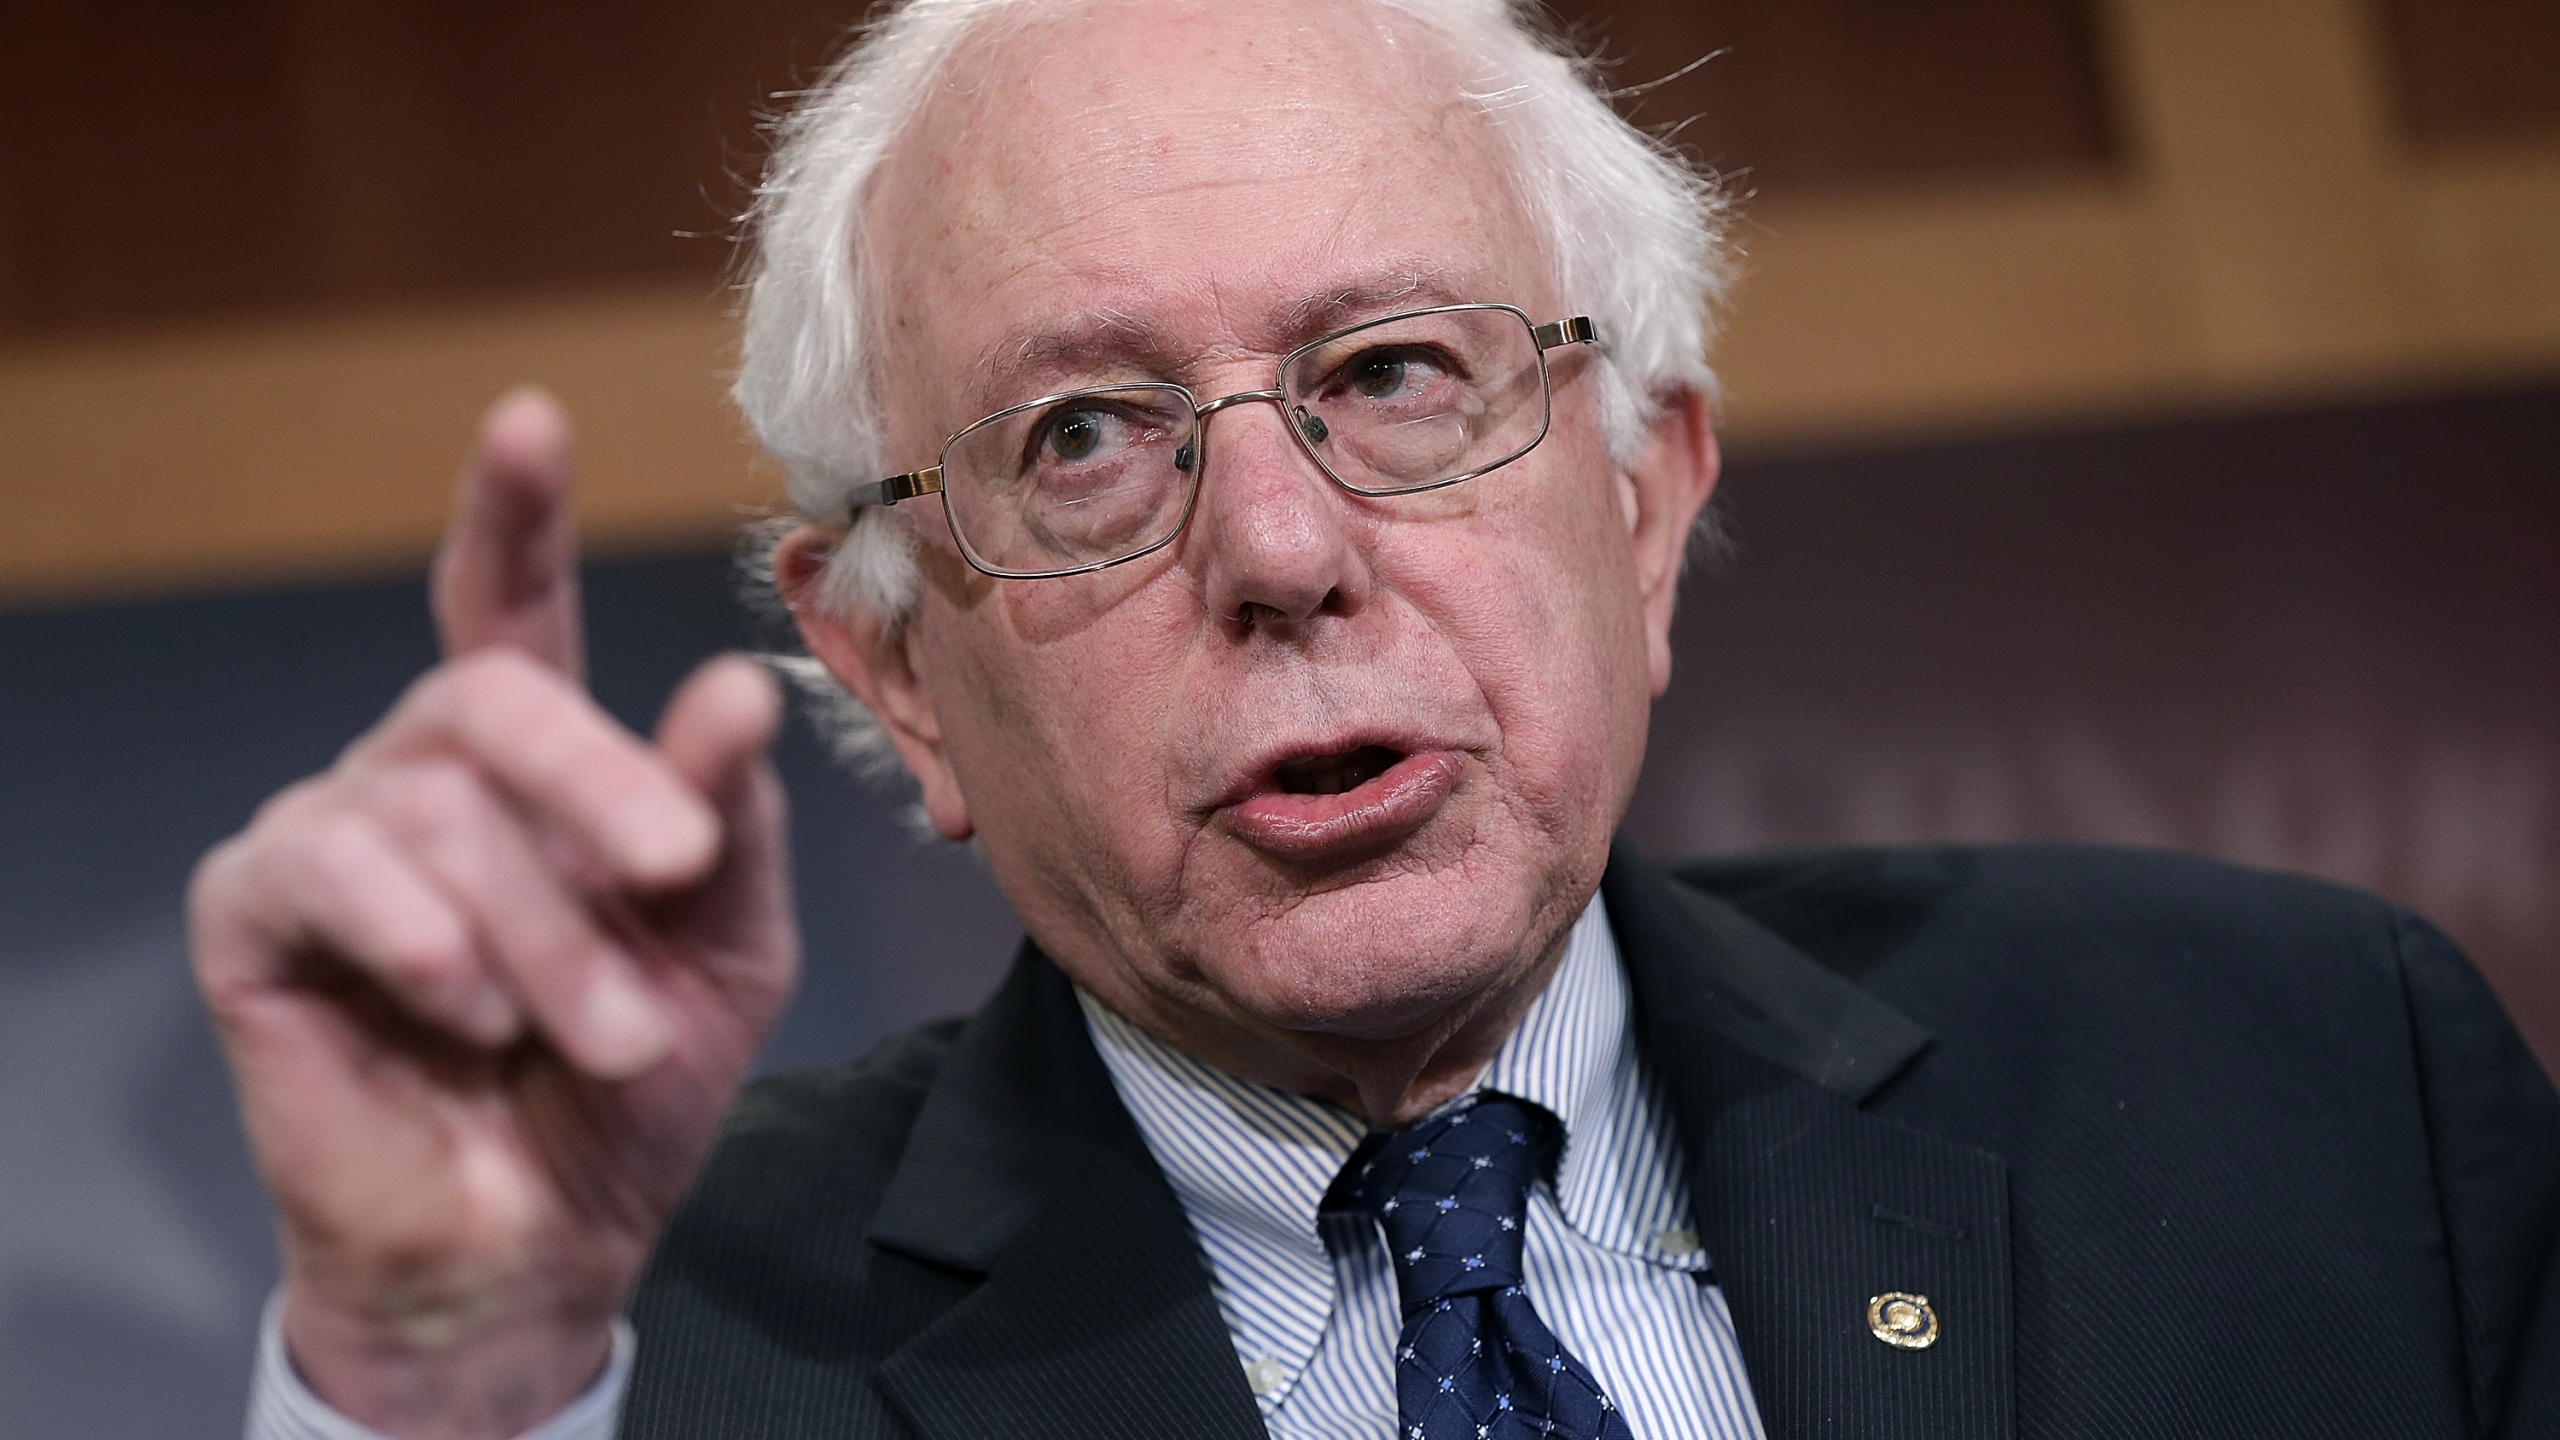 Bernie Sanders (Photo by Win McNamee/Getty Images)